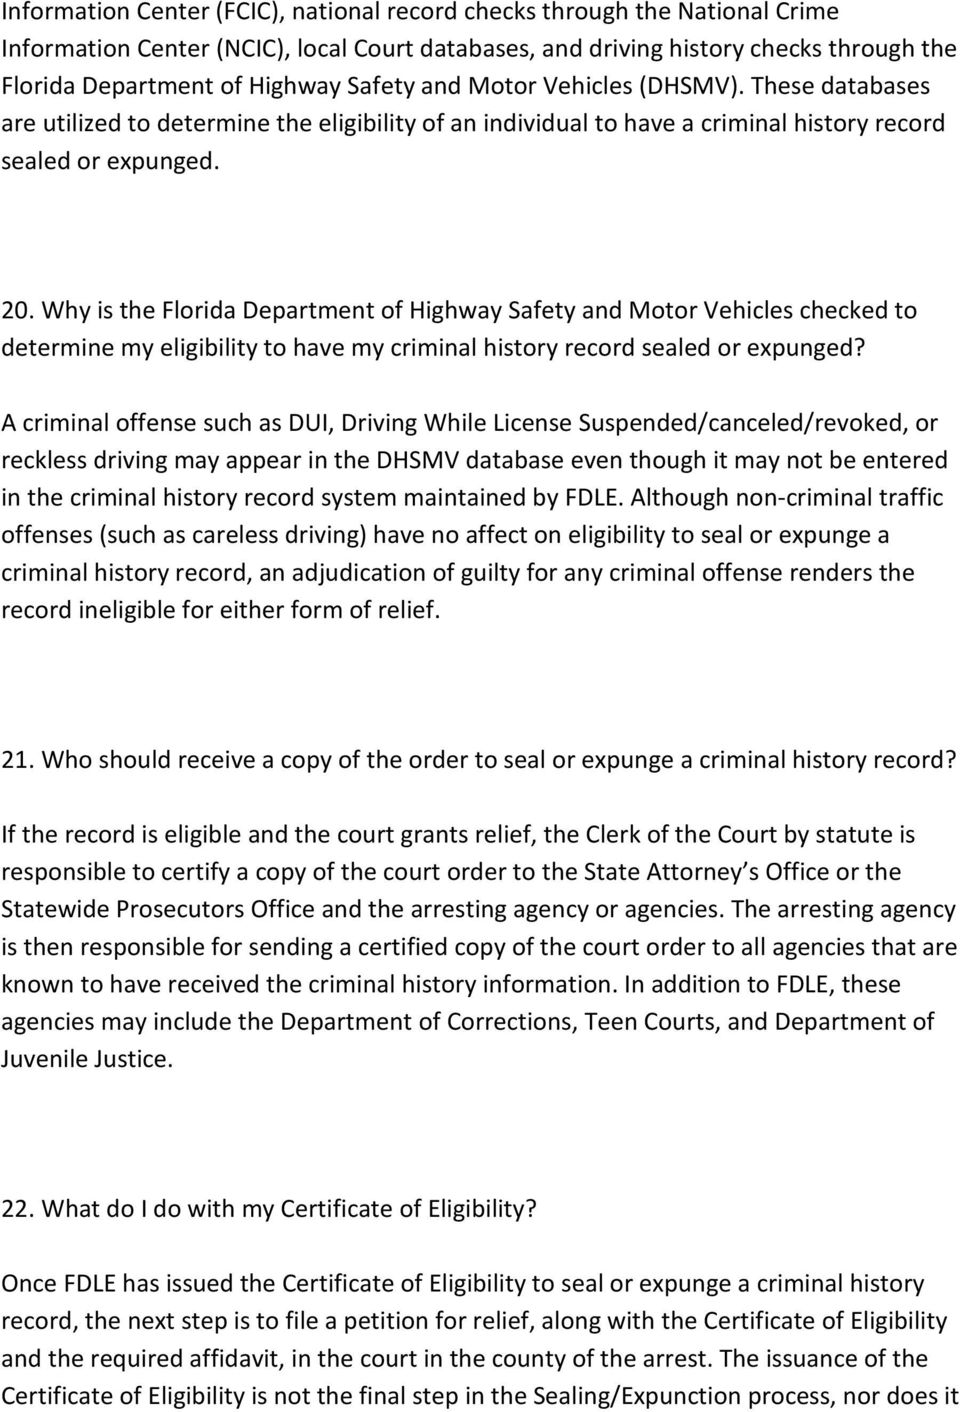 Why is the Florida Department of Highway Safety and Motor Vehicles checked to determine my eligibility to have my criminal history record sealed or expunged?